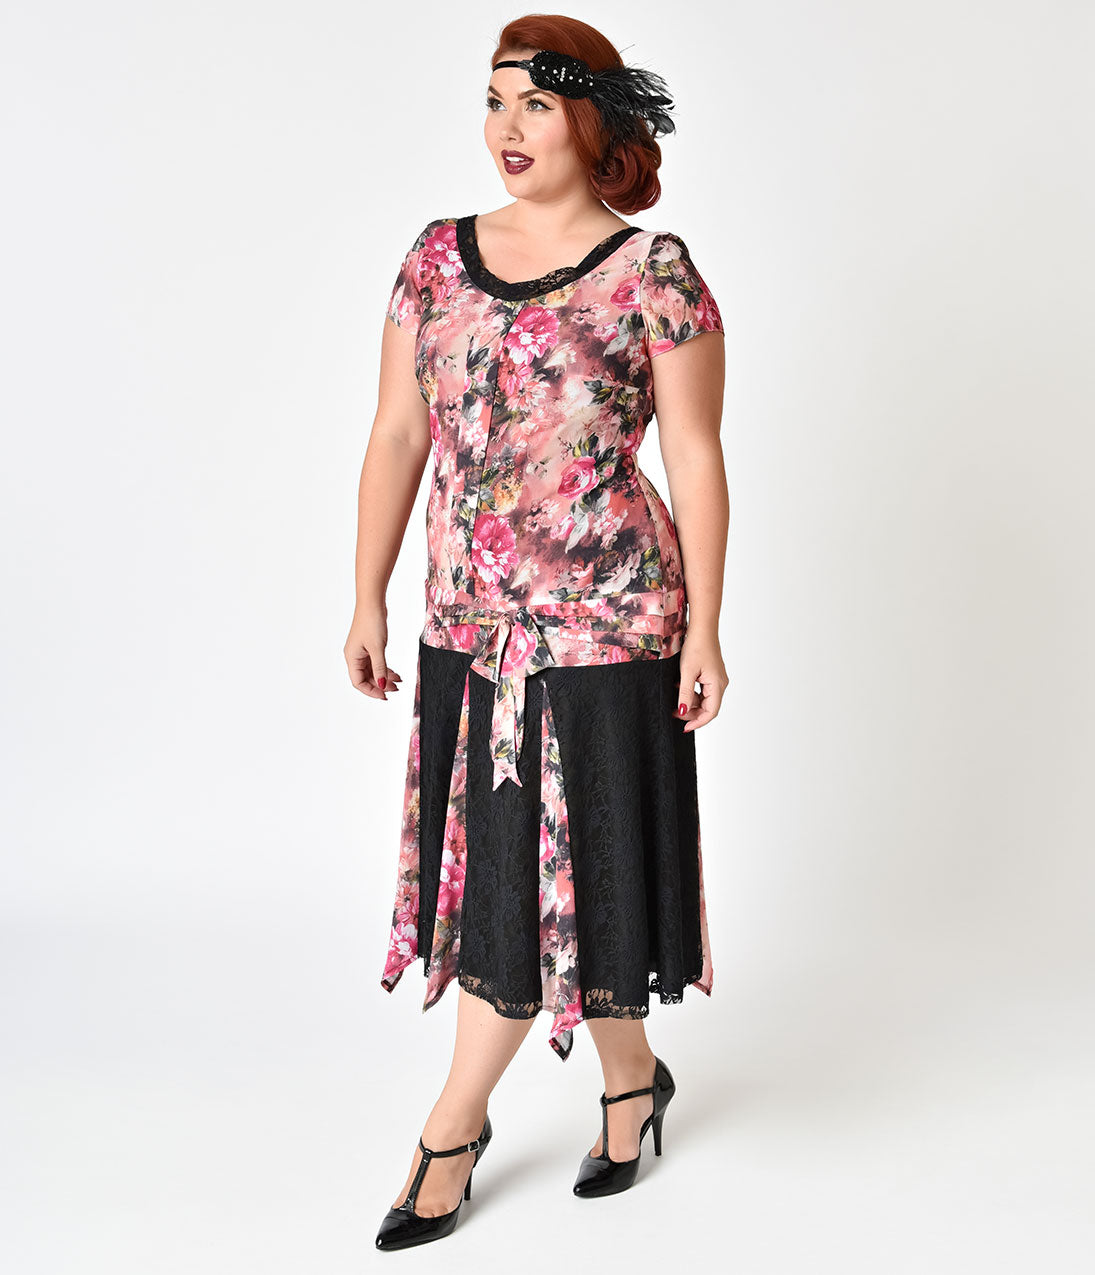 1920s Style Dresses, Flapper Dresses 1920s Style Pink Floral Chiffon Millie Flapper Day Dress $62.00 AT vintagedancer.com